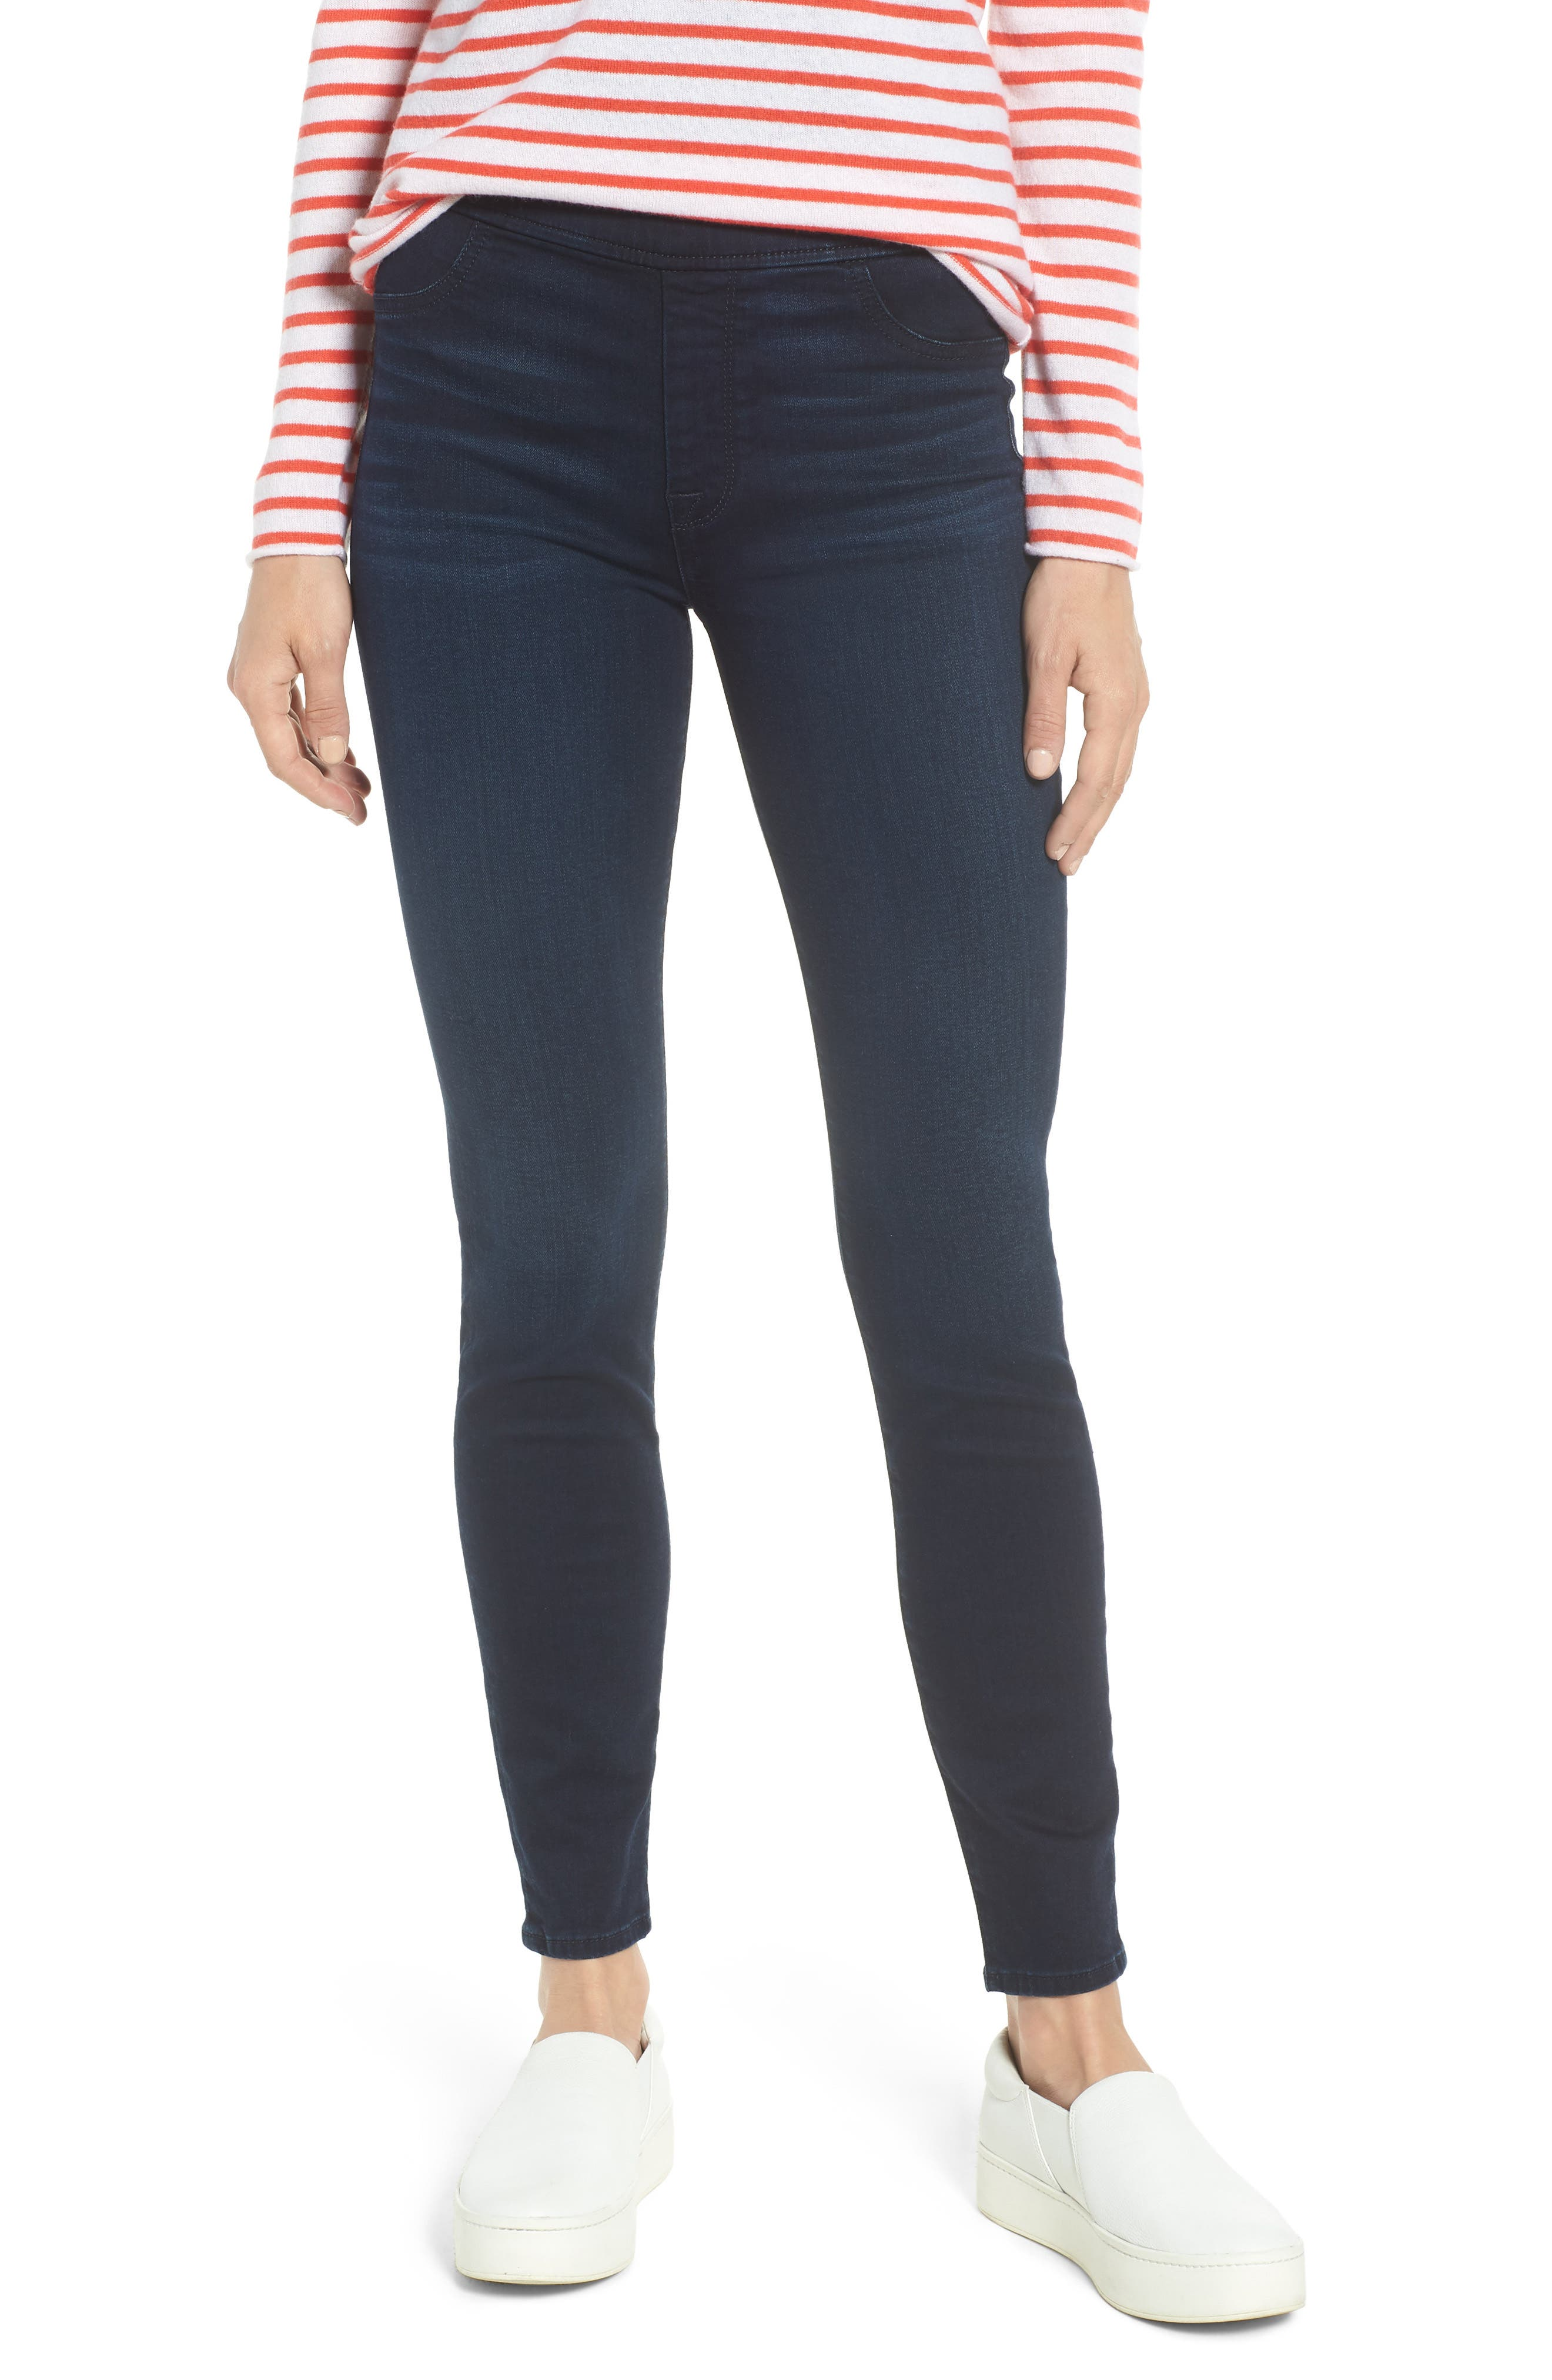 JEN7 BY 7 FOR ALL MANKIND, Comfort Skinny Denim Leggings, Main thumbnail 1, color, RICHE TOUCH BLUE/BLACK